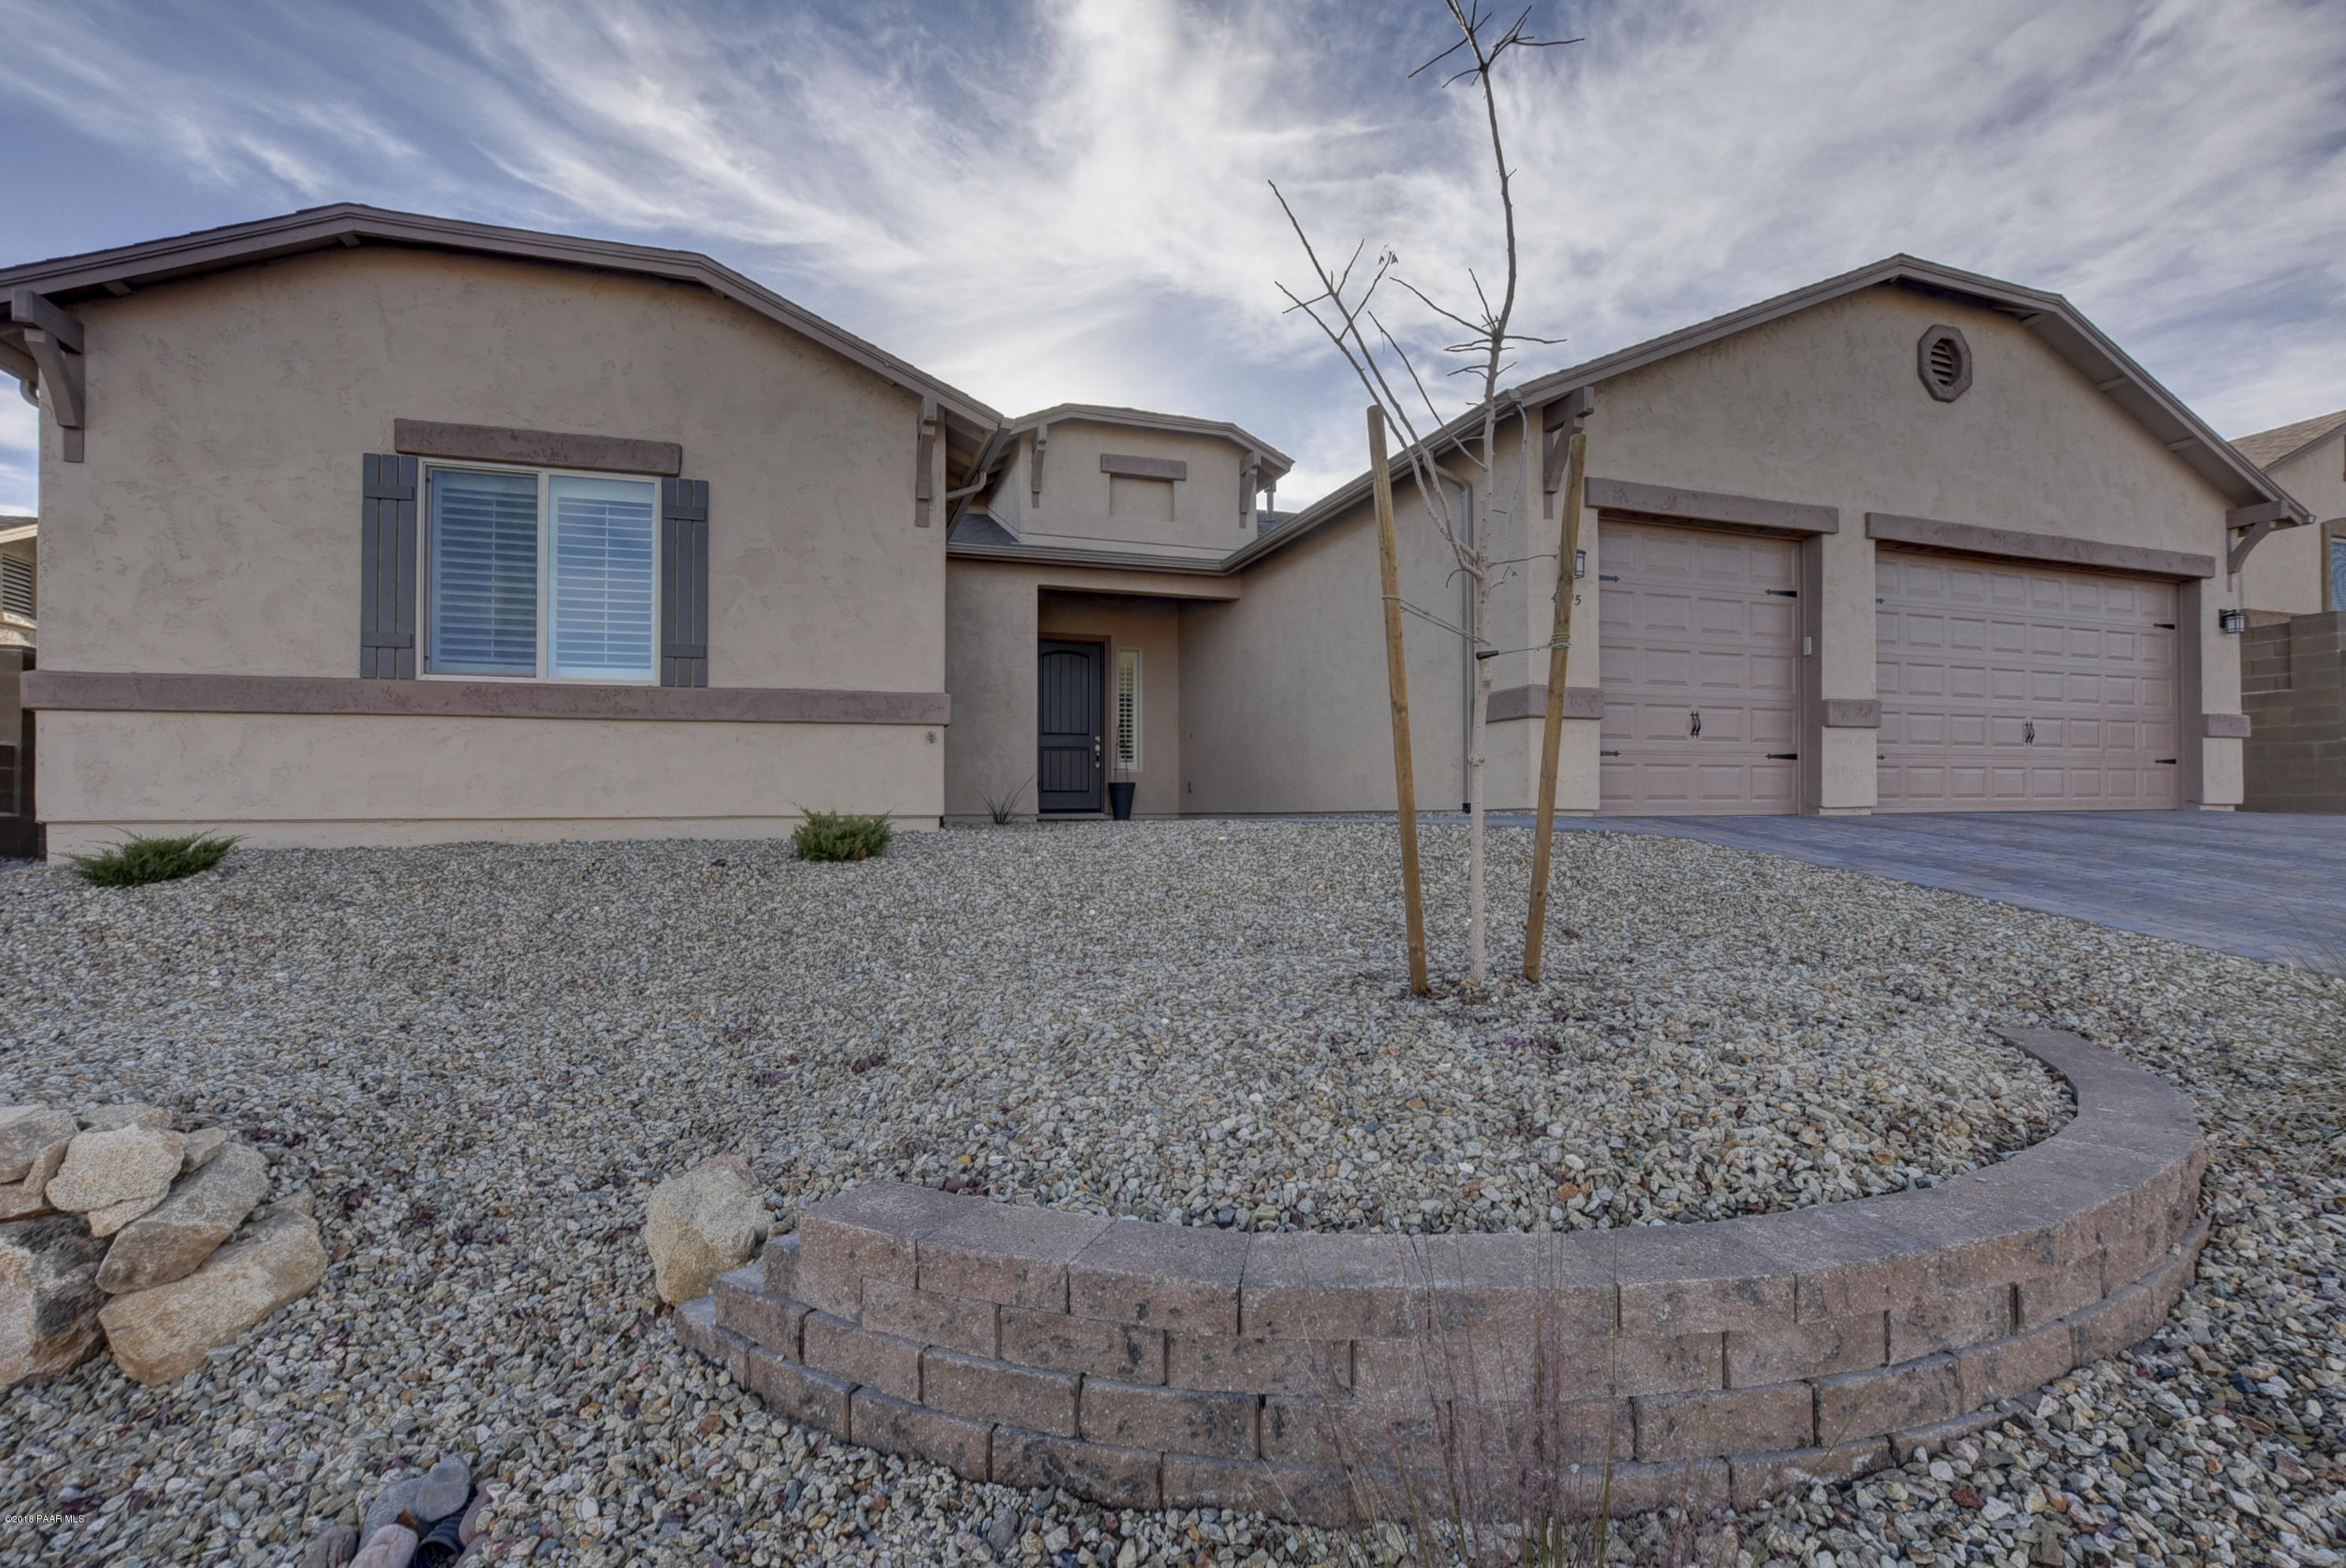 Photo of 4095 Wynnwood, Prescott Valley, AZ 86314